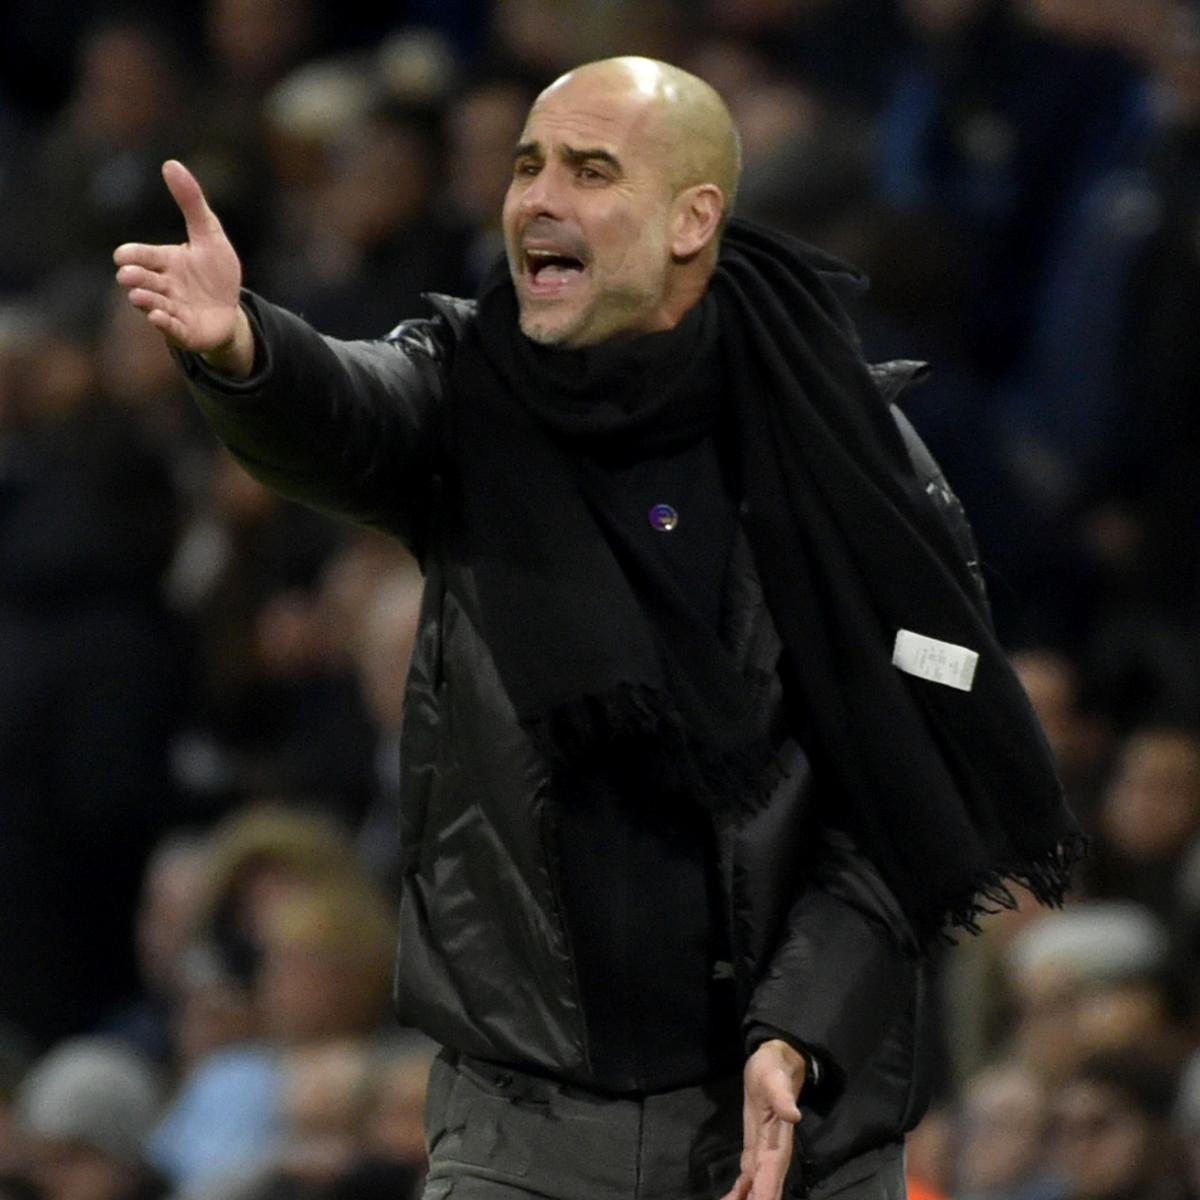 The Fixes That Can Help Pep Guardiola and Manchester City Stay at the Top